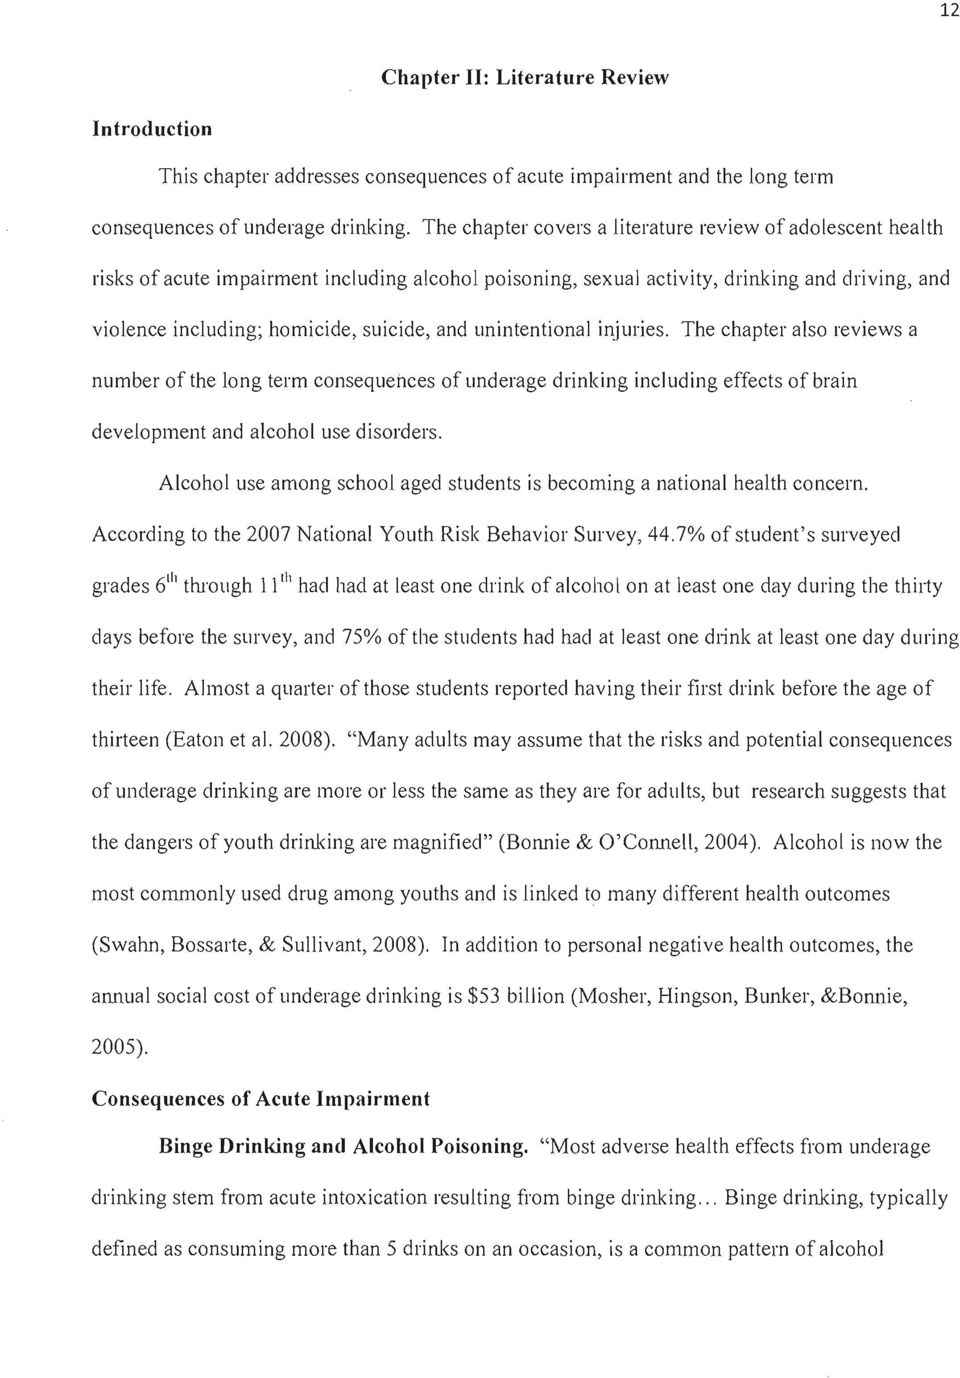 and unintentional injuries. The chapter also reviews a number of the long term consequences of underage drinking including effects of brain development and alcohol use disorders.